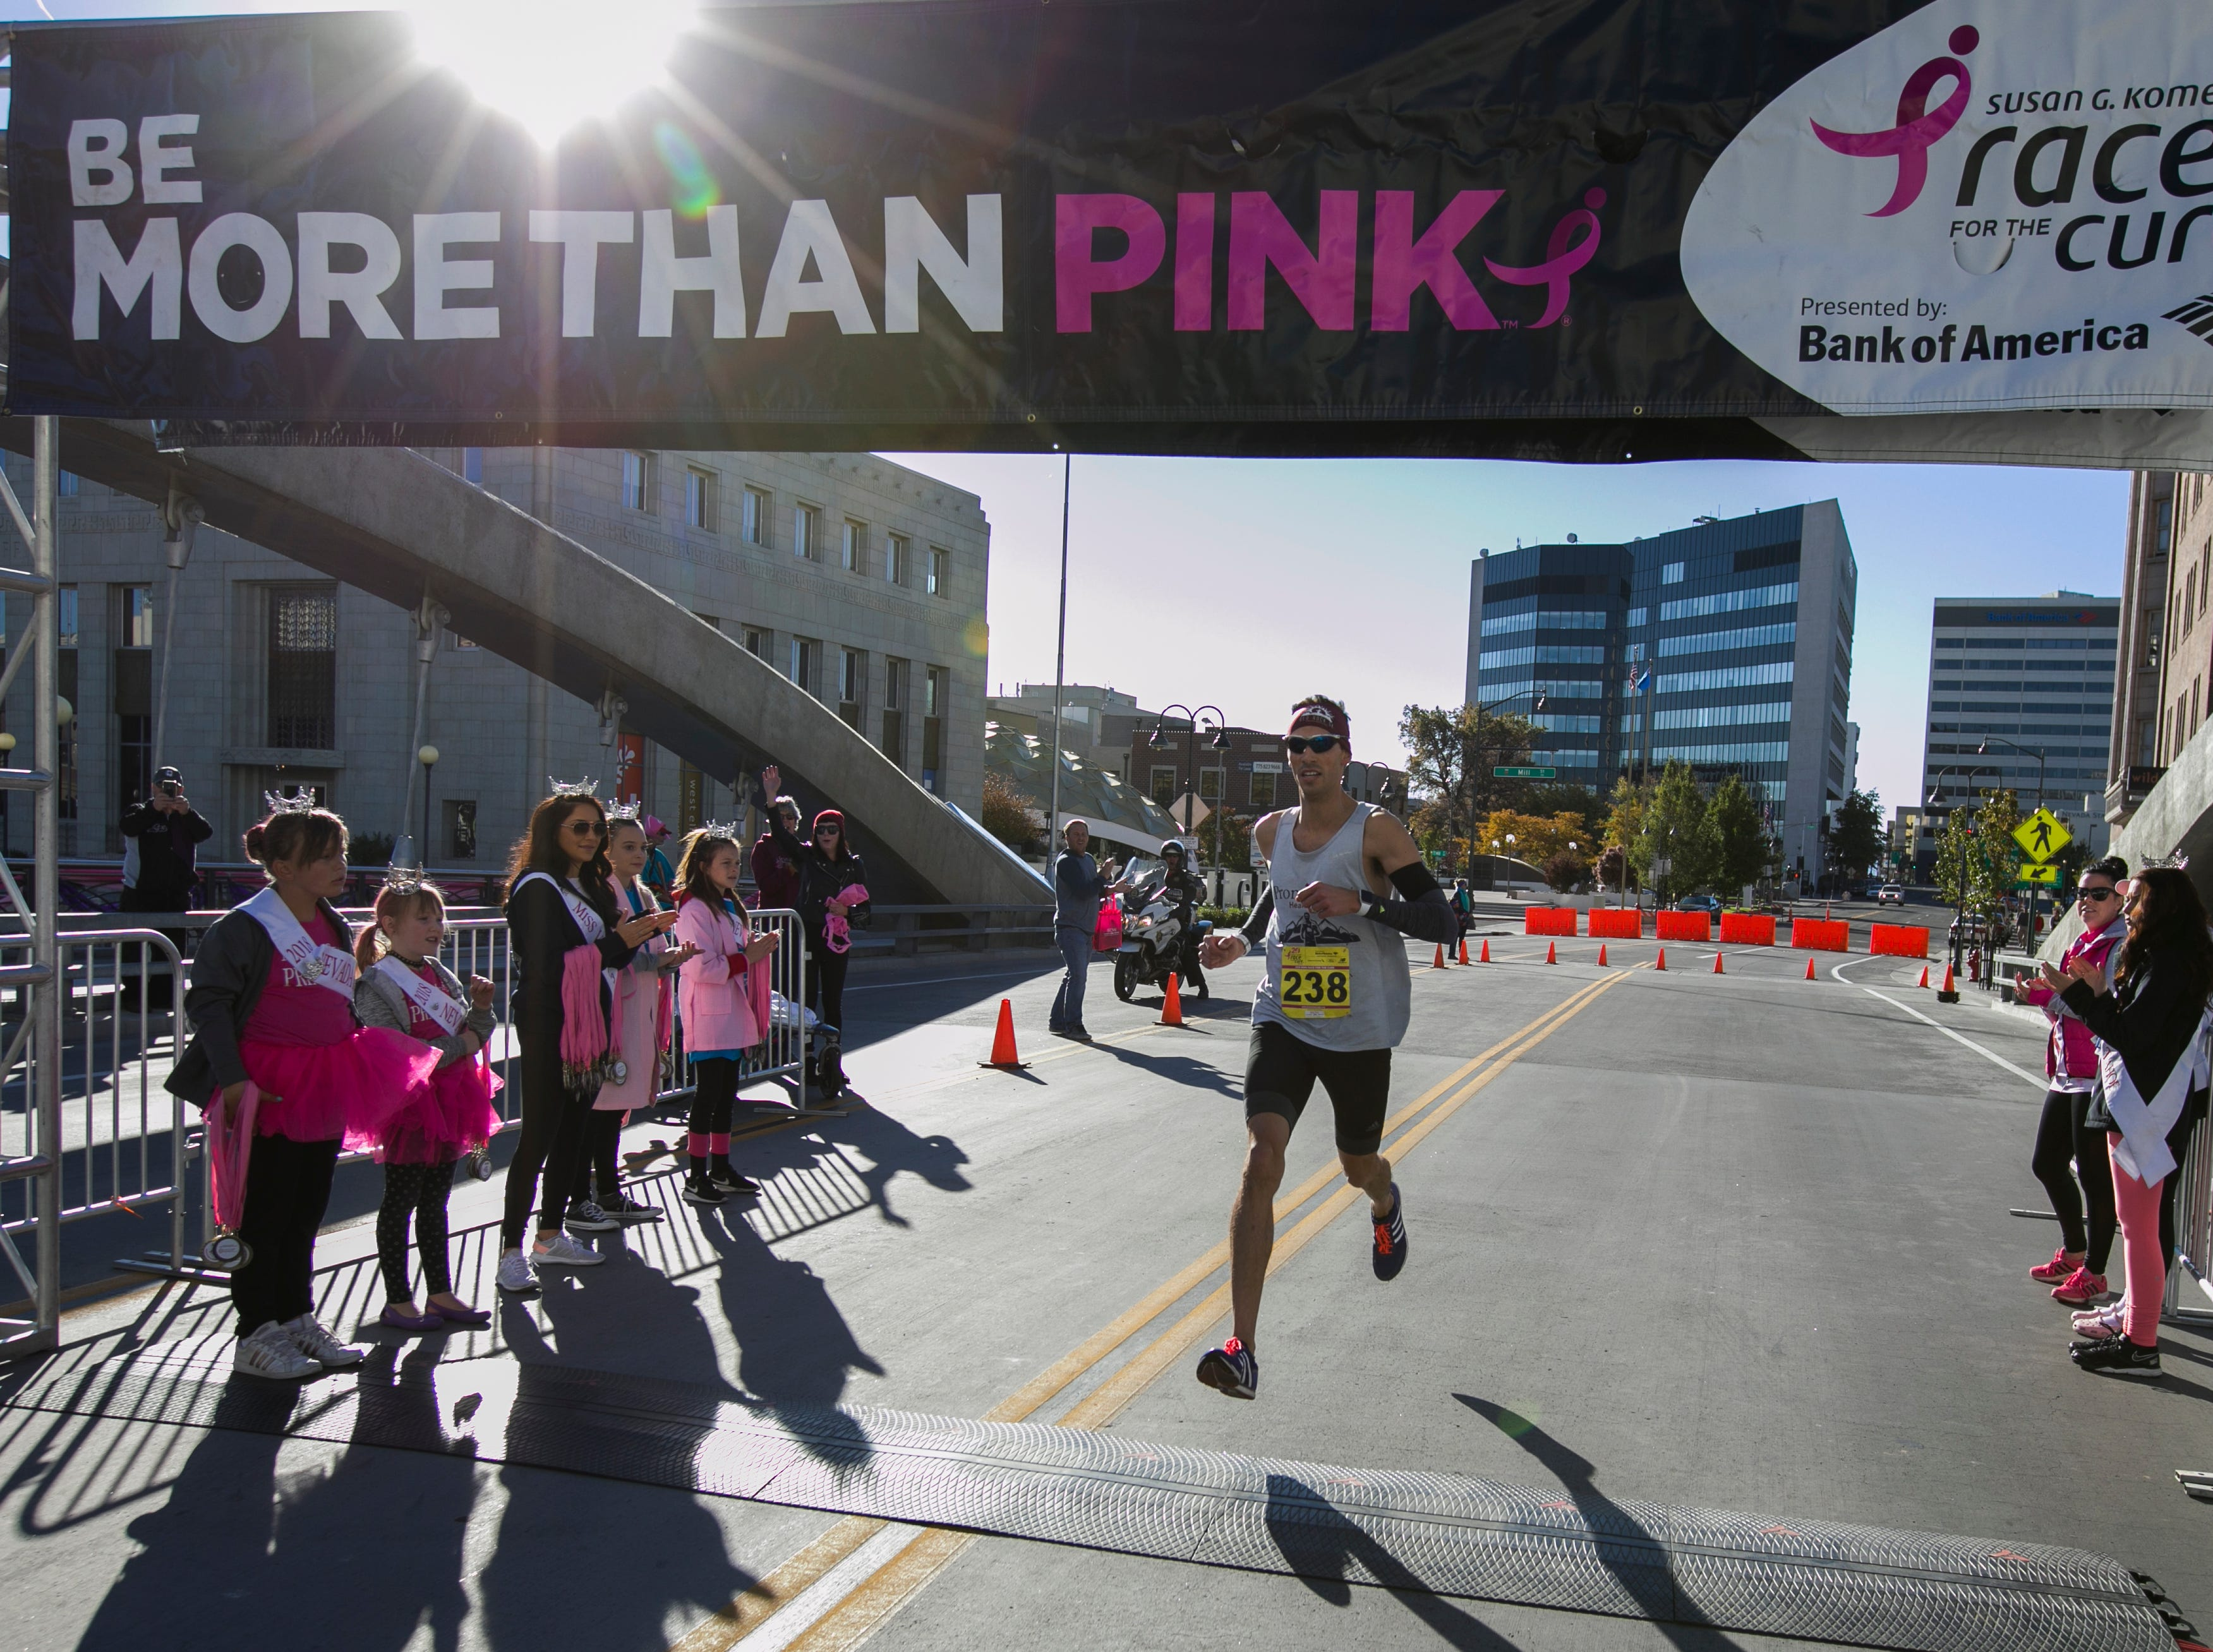 Dominic Henriques won the runners portion of the Susan G. Komen Race for the Cure on Sunday, October 14,  2018 in downtown Reno.